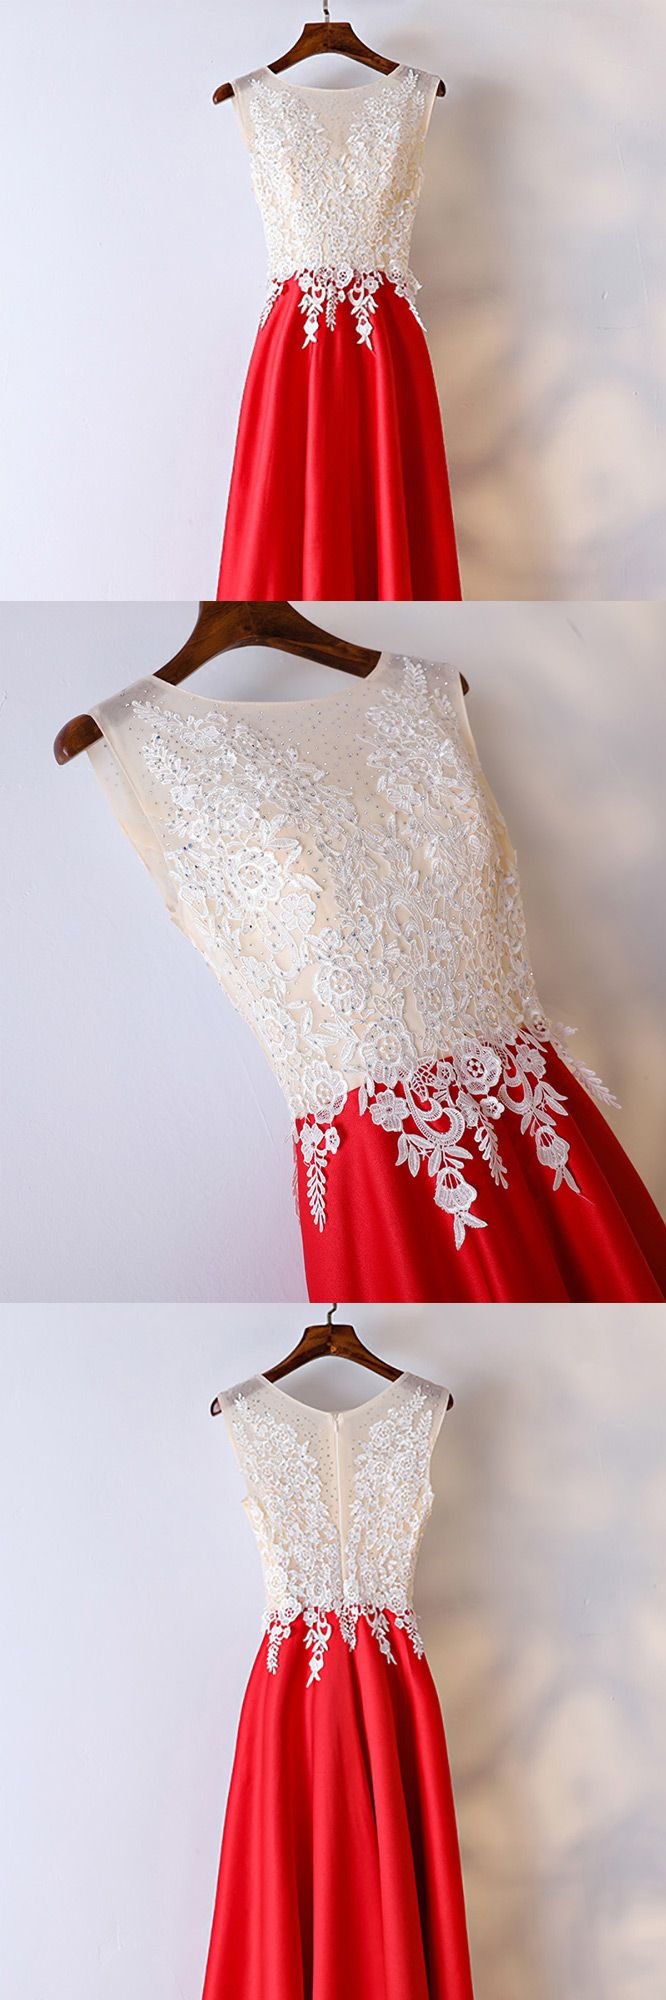 Only $109, Prom Dresses White And Red Lace Long Formal Dress For Women #MYX18176 at #GemGrace. View more special Bridal Party Dresses,Prom Dresses,Evening Dresses now? GemGrace is a solution for those who want to buy delicate gowns with affordable prices, a solution for those who have unique ideas about their gowns. 2018 new arrived, shop now to get $10 off!